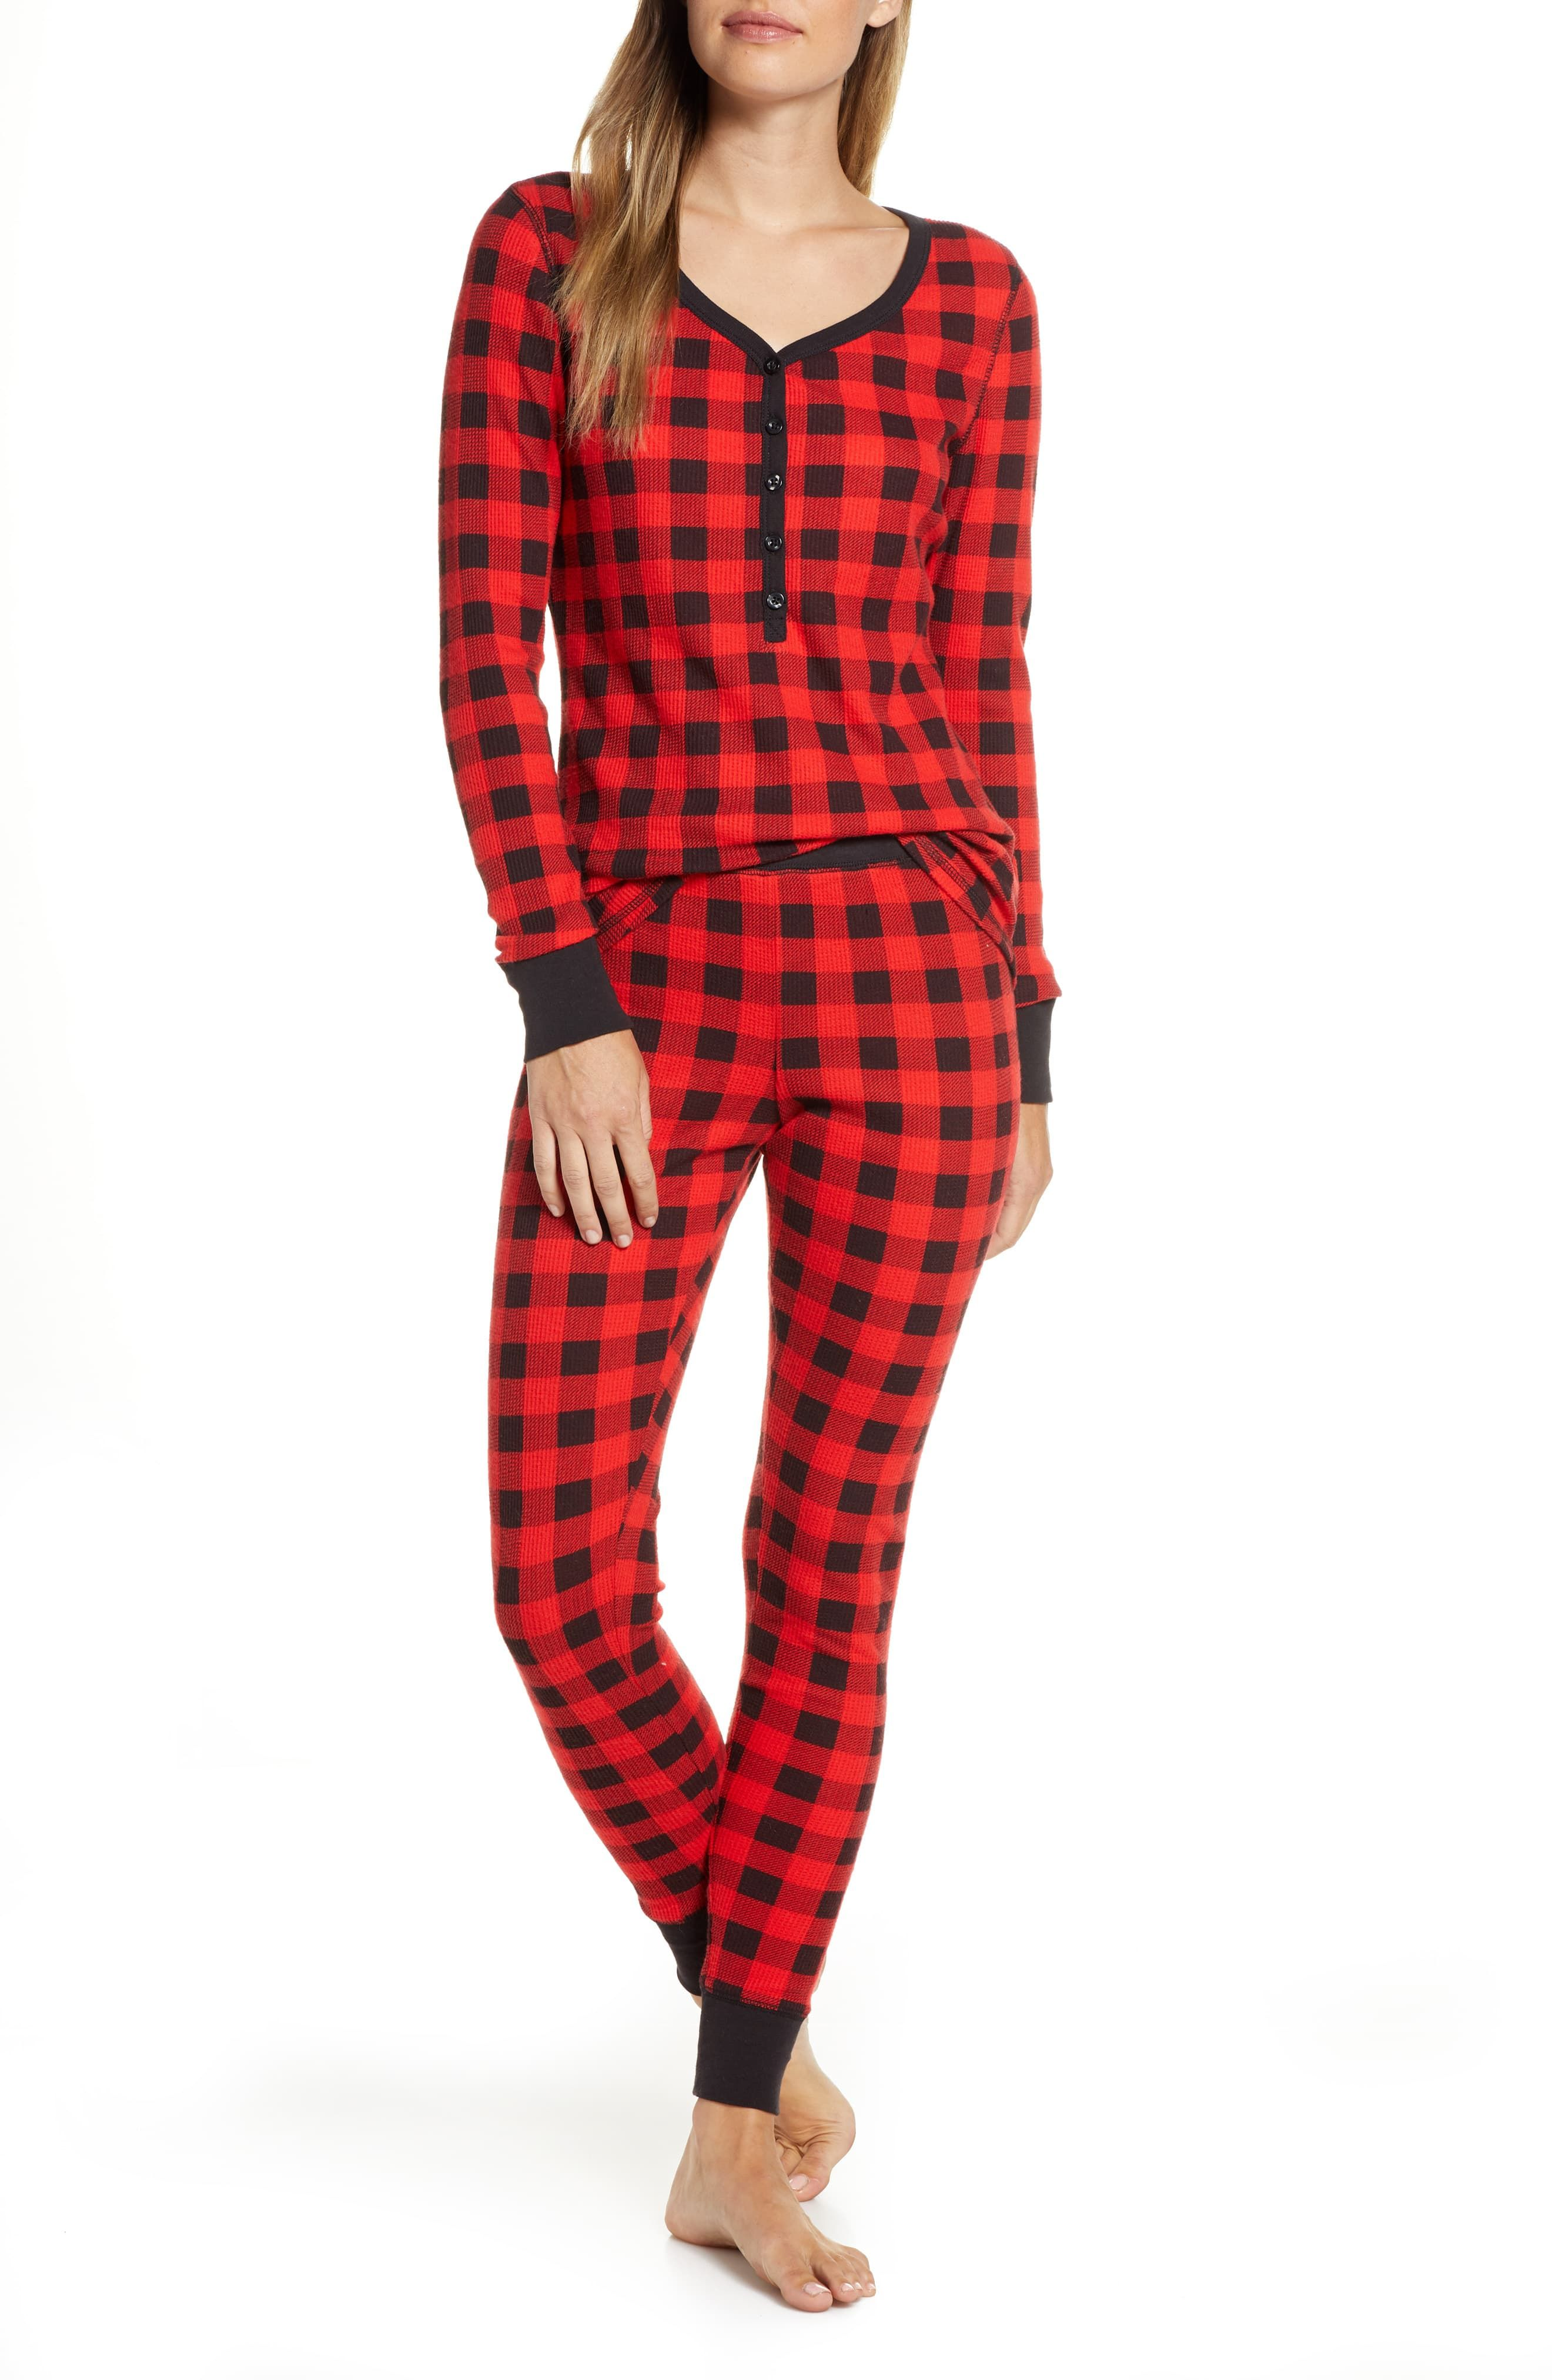 Thermal Pajamas Regular Plus Size With Images Thermal Pajamas Casual Day Outfits Pajamas Women